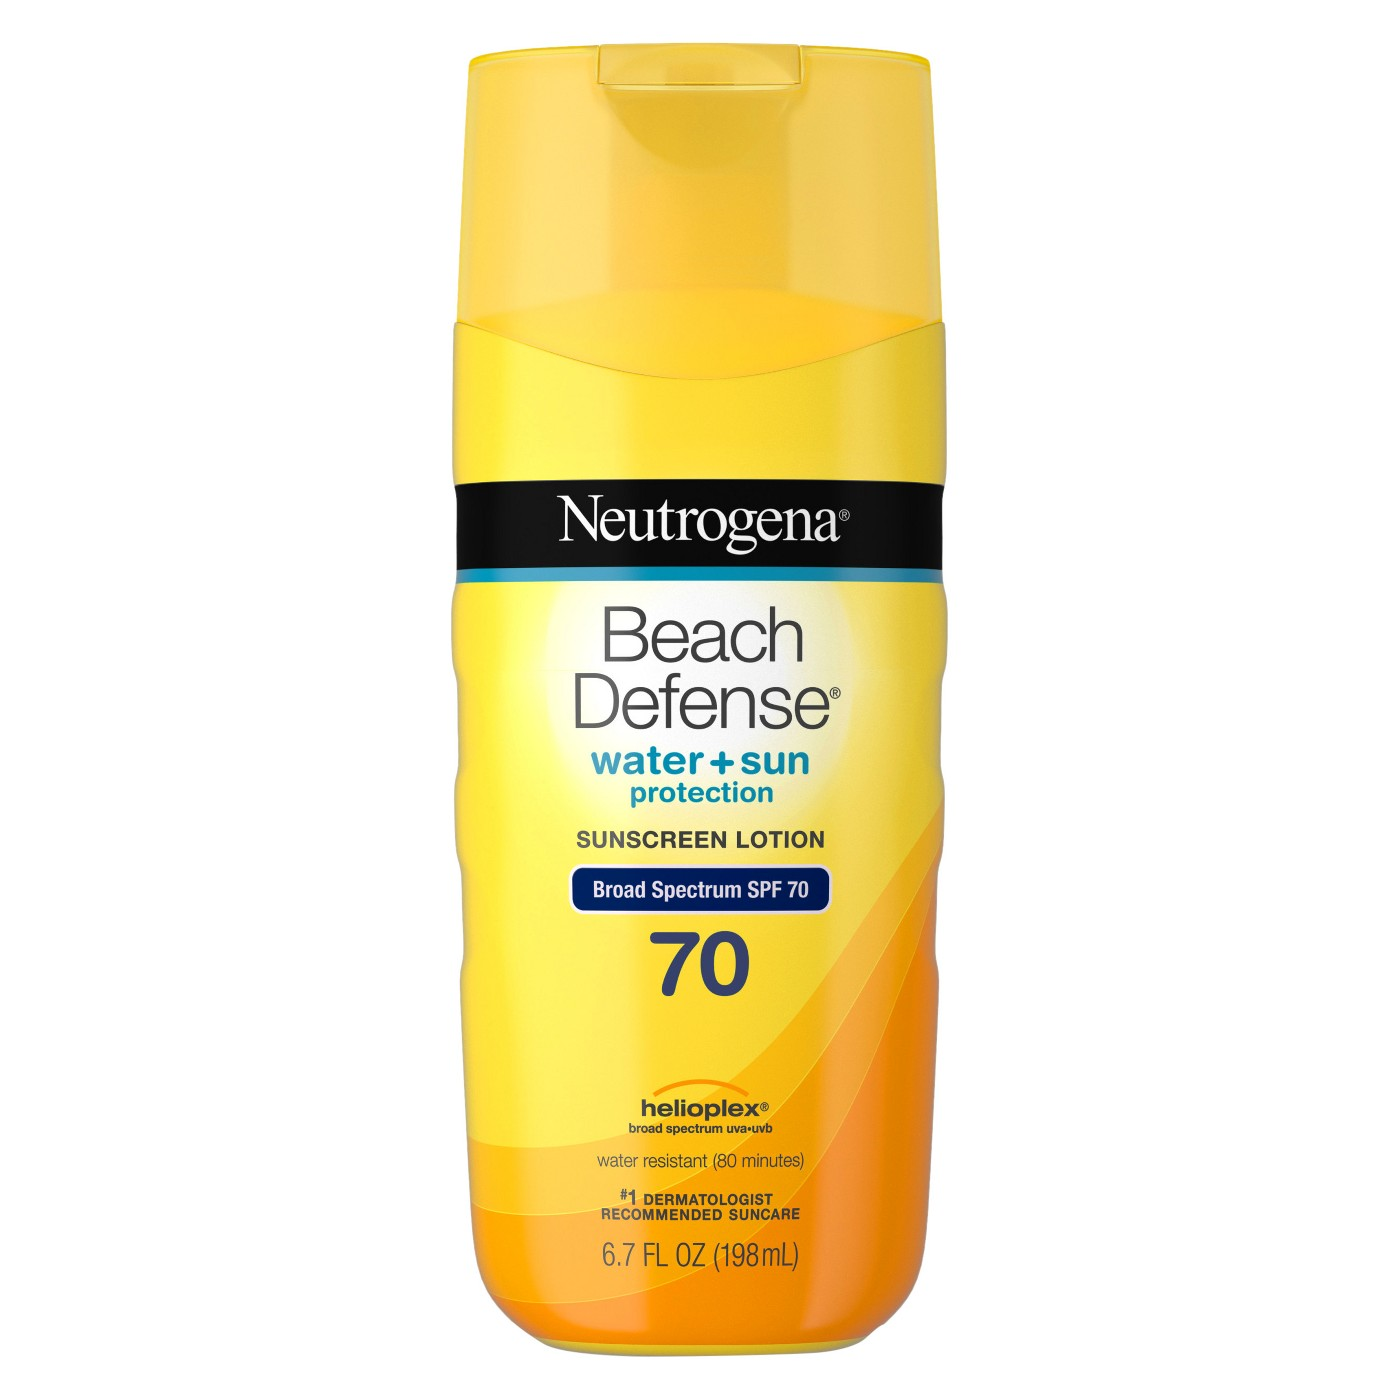 Neutrogena® Beach Defense Broad Spectrum Sunscreen Body Lotion  - SPF 70 - 6.7oz - image 1 of 3